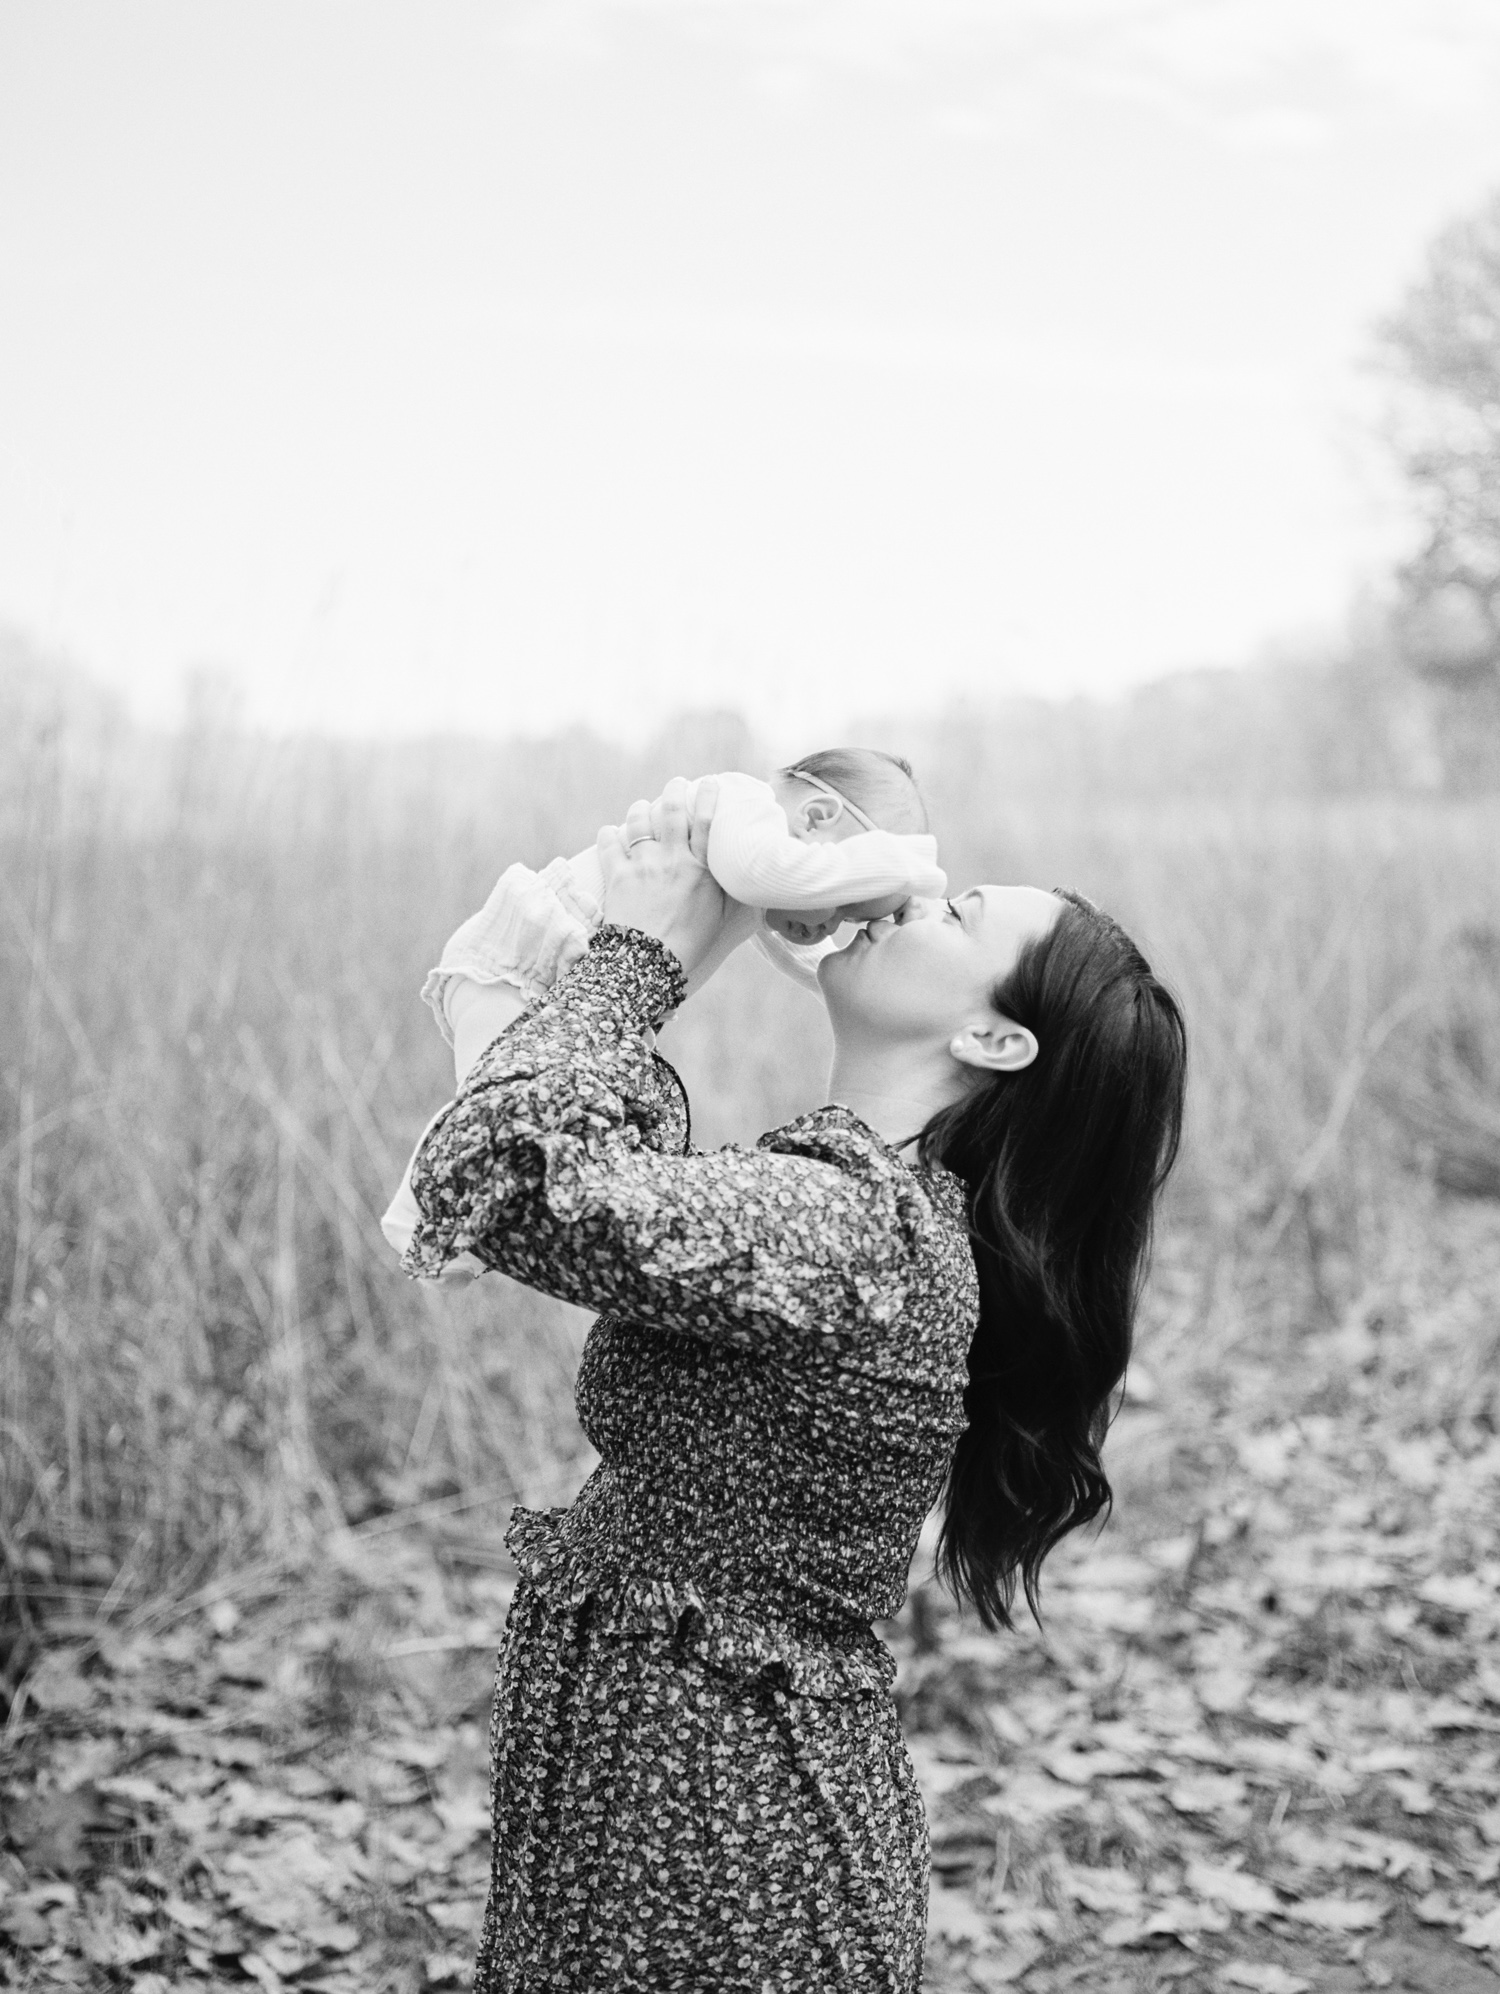 A mother holds and kisses her baby girl in an open field during film family photography near Ann Arbor, Michigan